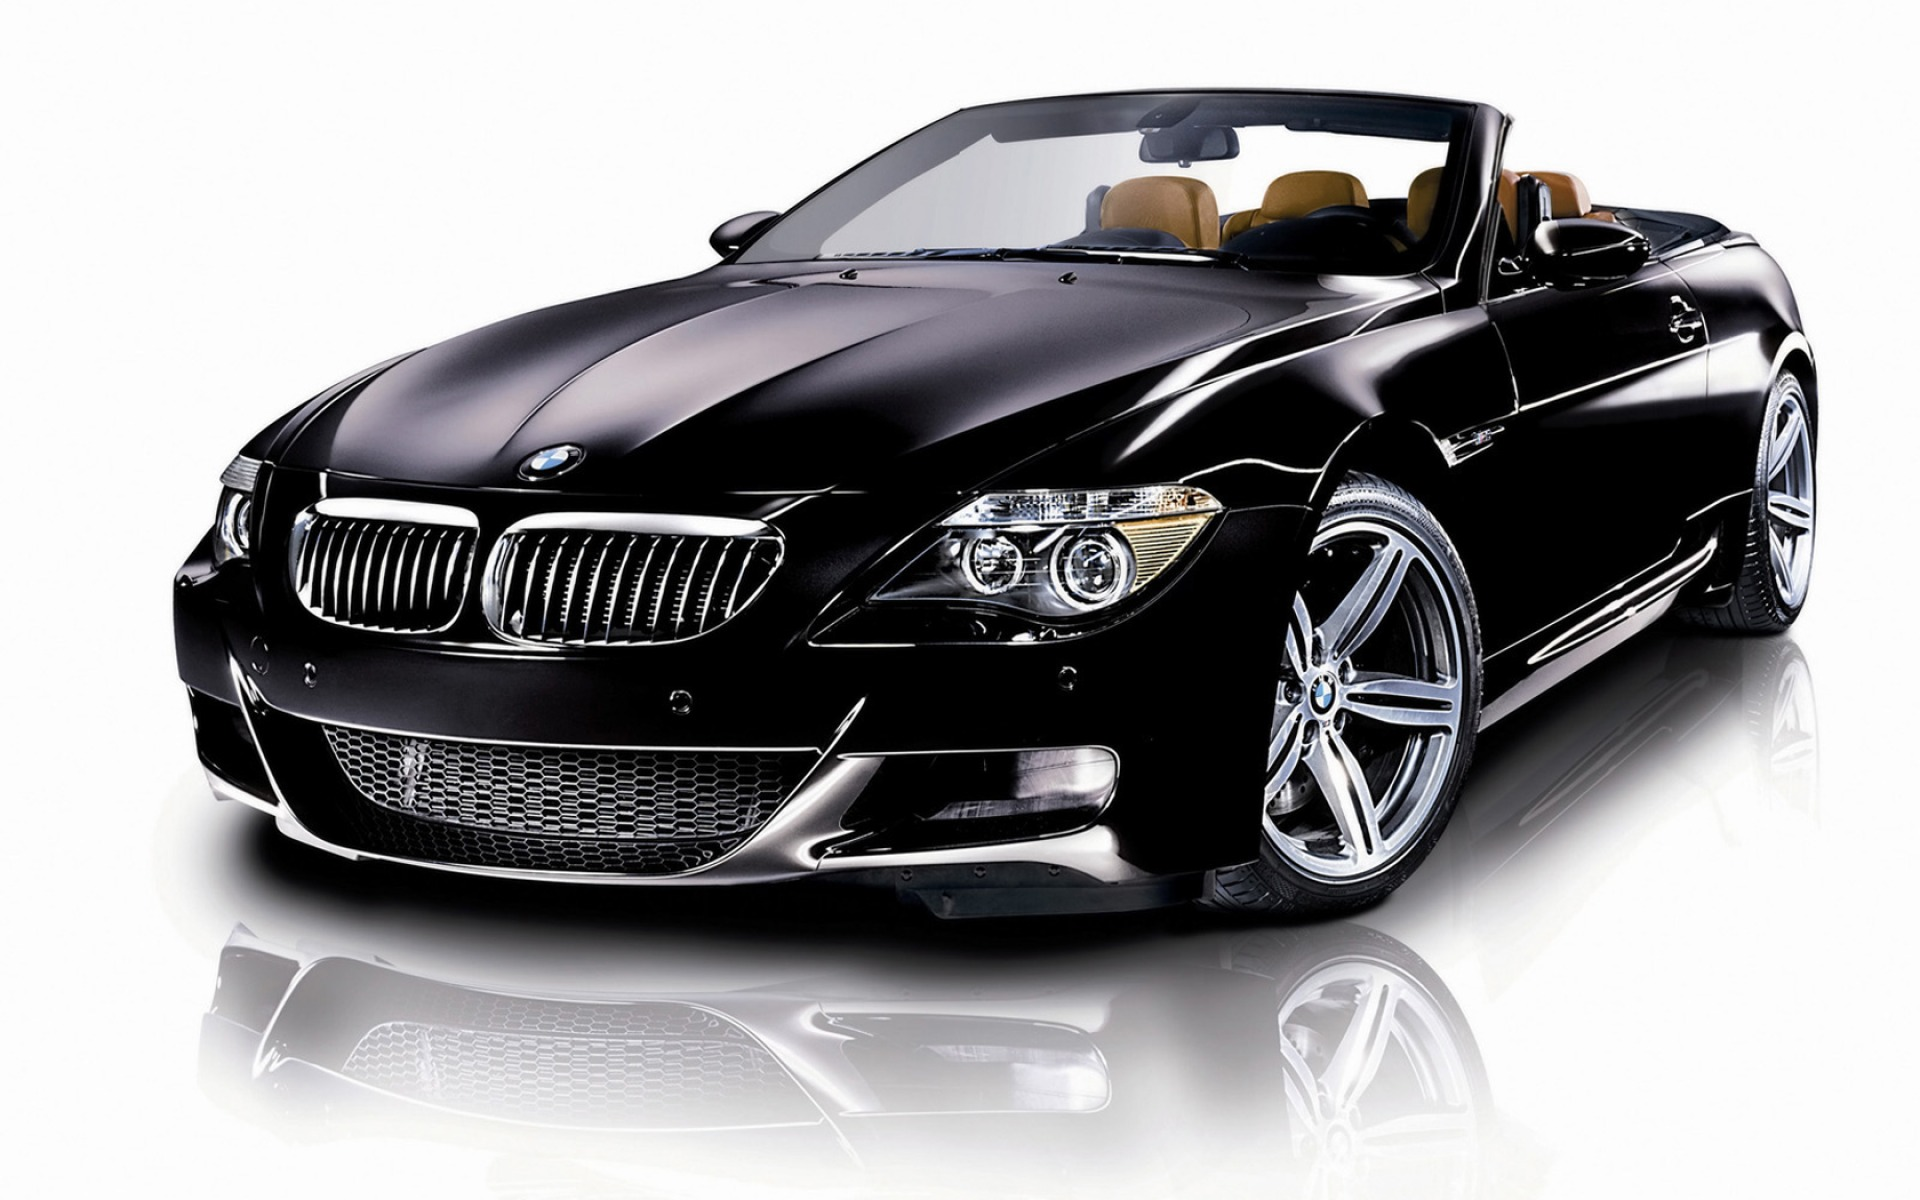 Ultrablogus  Unique Bmw Car Wallpaper Wallpapers For Free Download About   With Lovable Bmw M Convertible Wallpaper Bmw Cars With Endearing Morris Mini Interior Also Mr Interior Parts In Addition  F Interior And Interior Fan As Well As Gt Interior Parts Additionally Cadillac Seville Interior From Allfreedownloadcom With Ultrablogus  Lovable Bmw Car Wallpaper Wallpapers For Free Download About   With Endearing Bmw M Convertible Wallpaper Bmw Cars And Unique Morris Mini Interior Also Mr Interior Parts In Addition  F Interior From Allfreedownloadcom